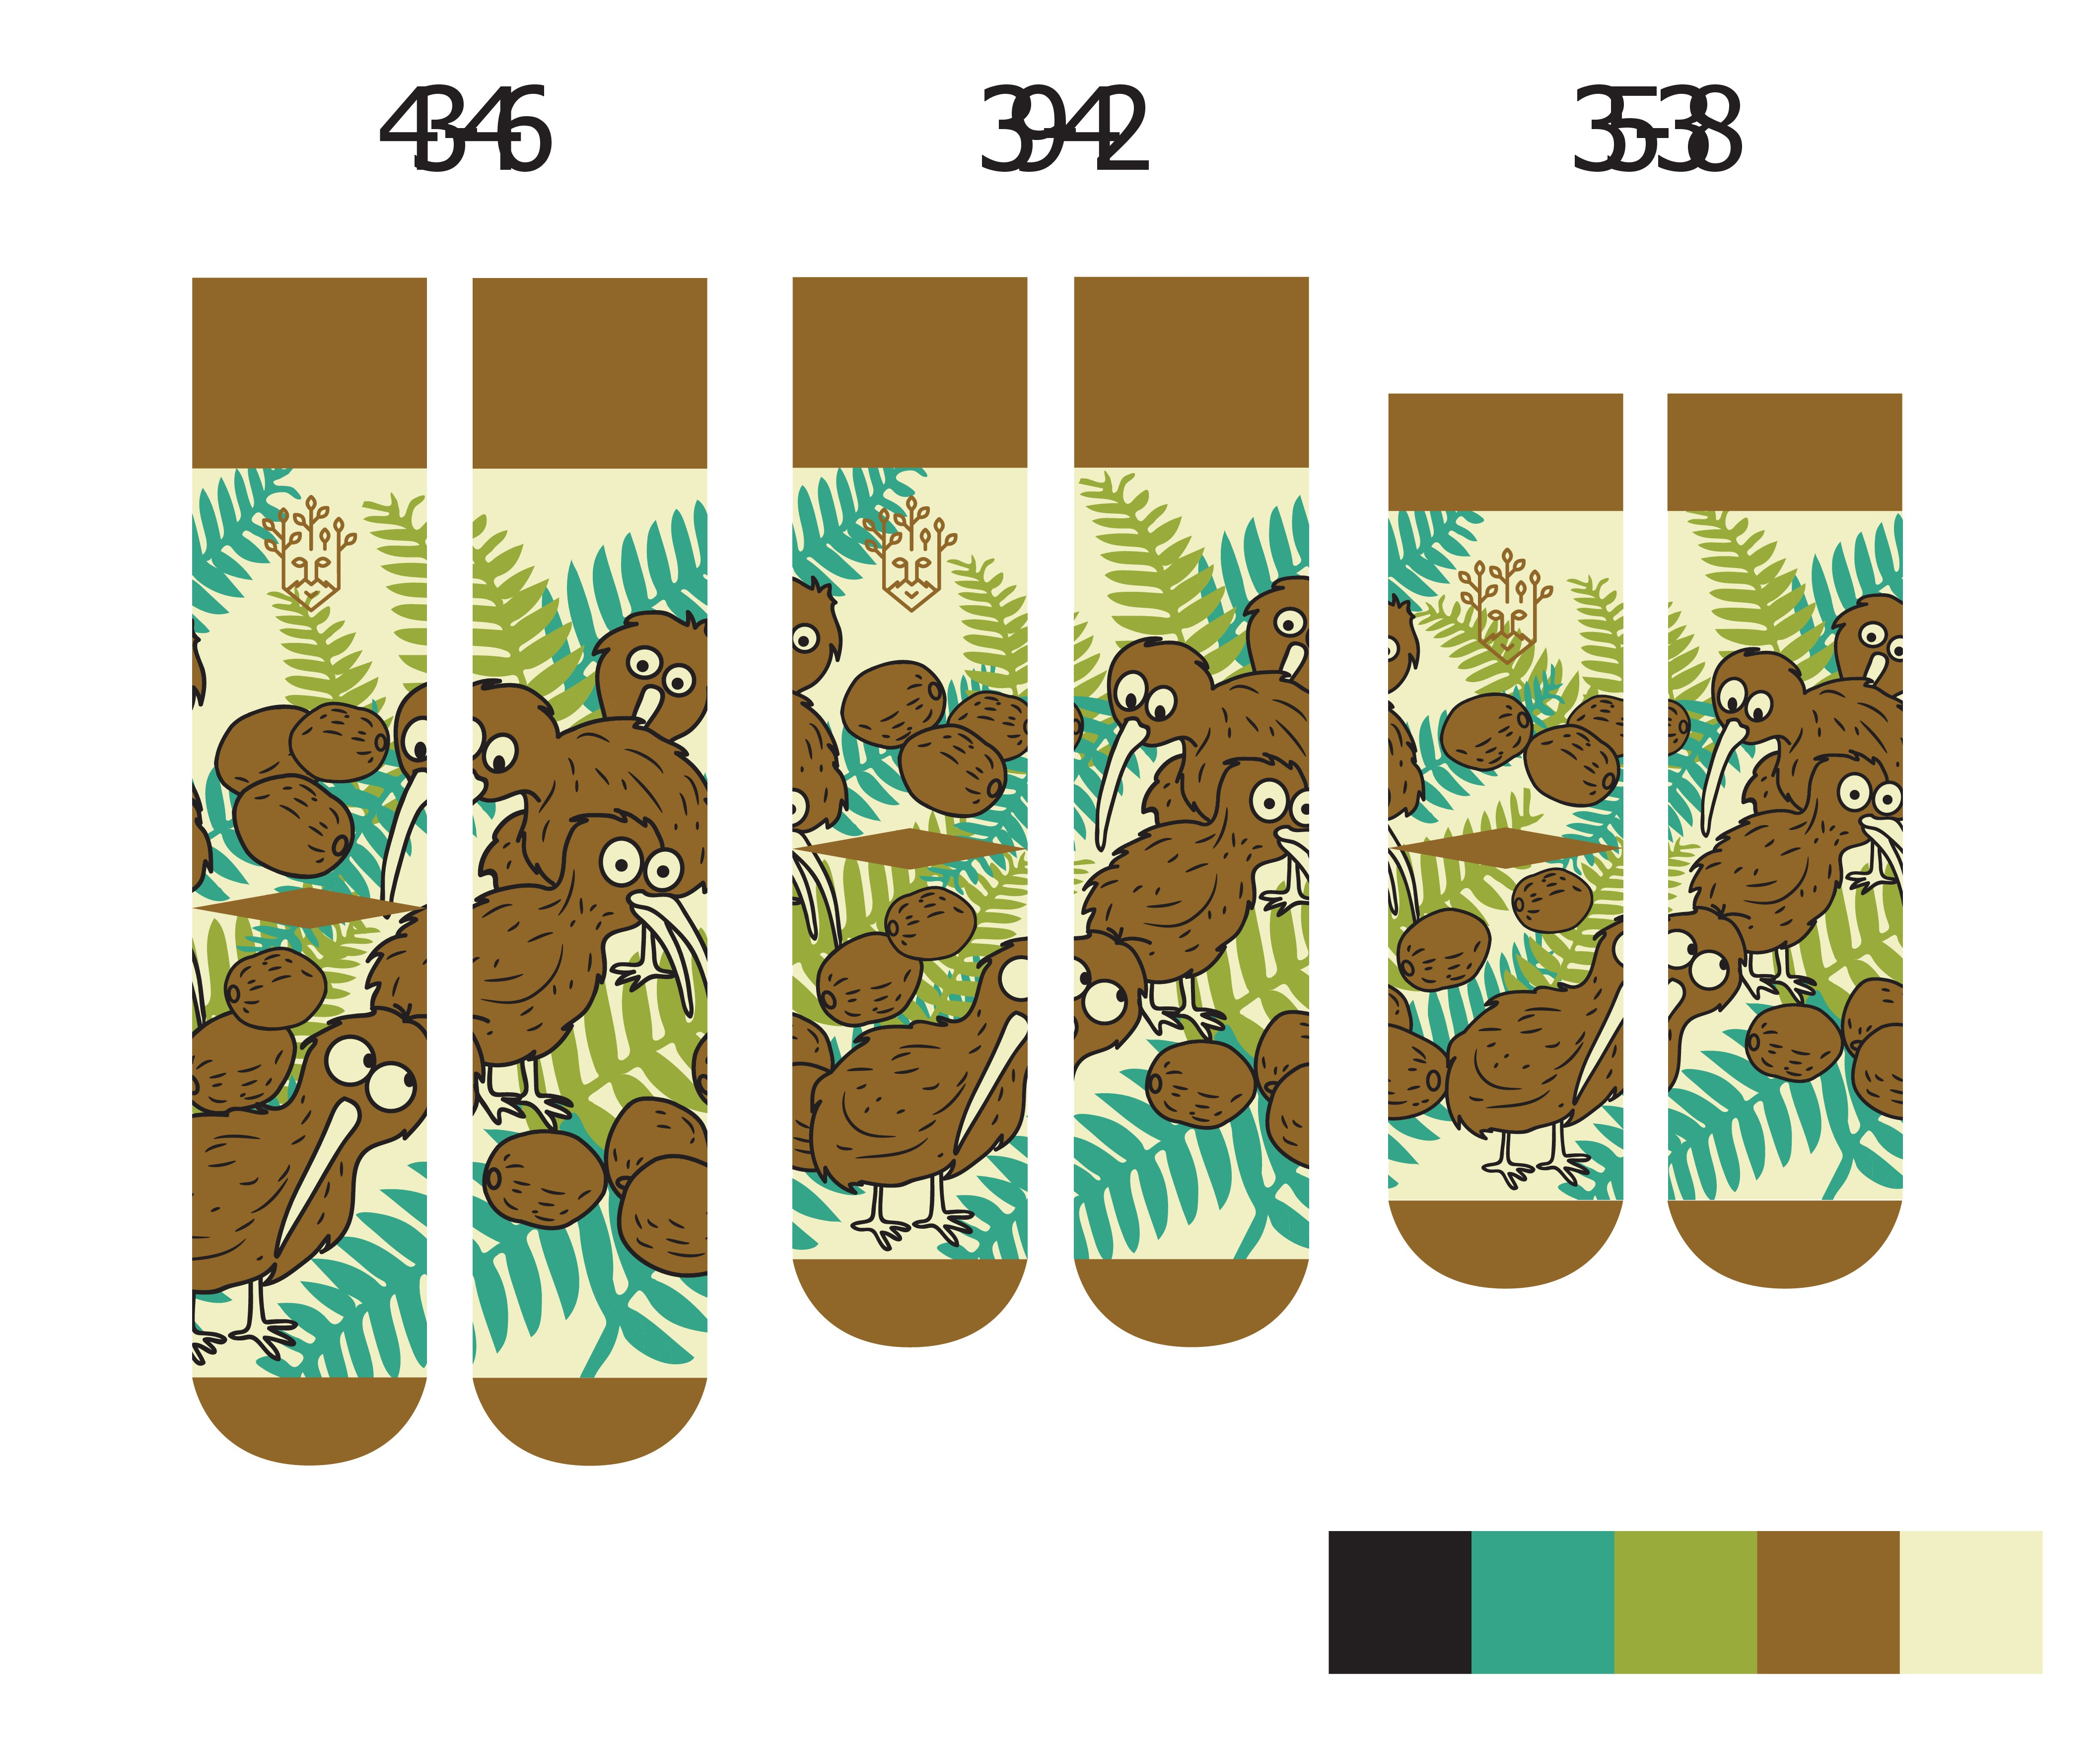 Funny miss-matched socks for fresh European brand